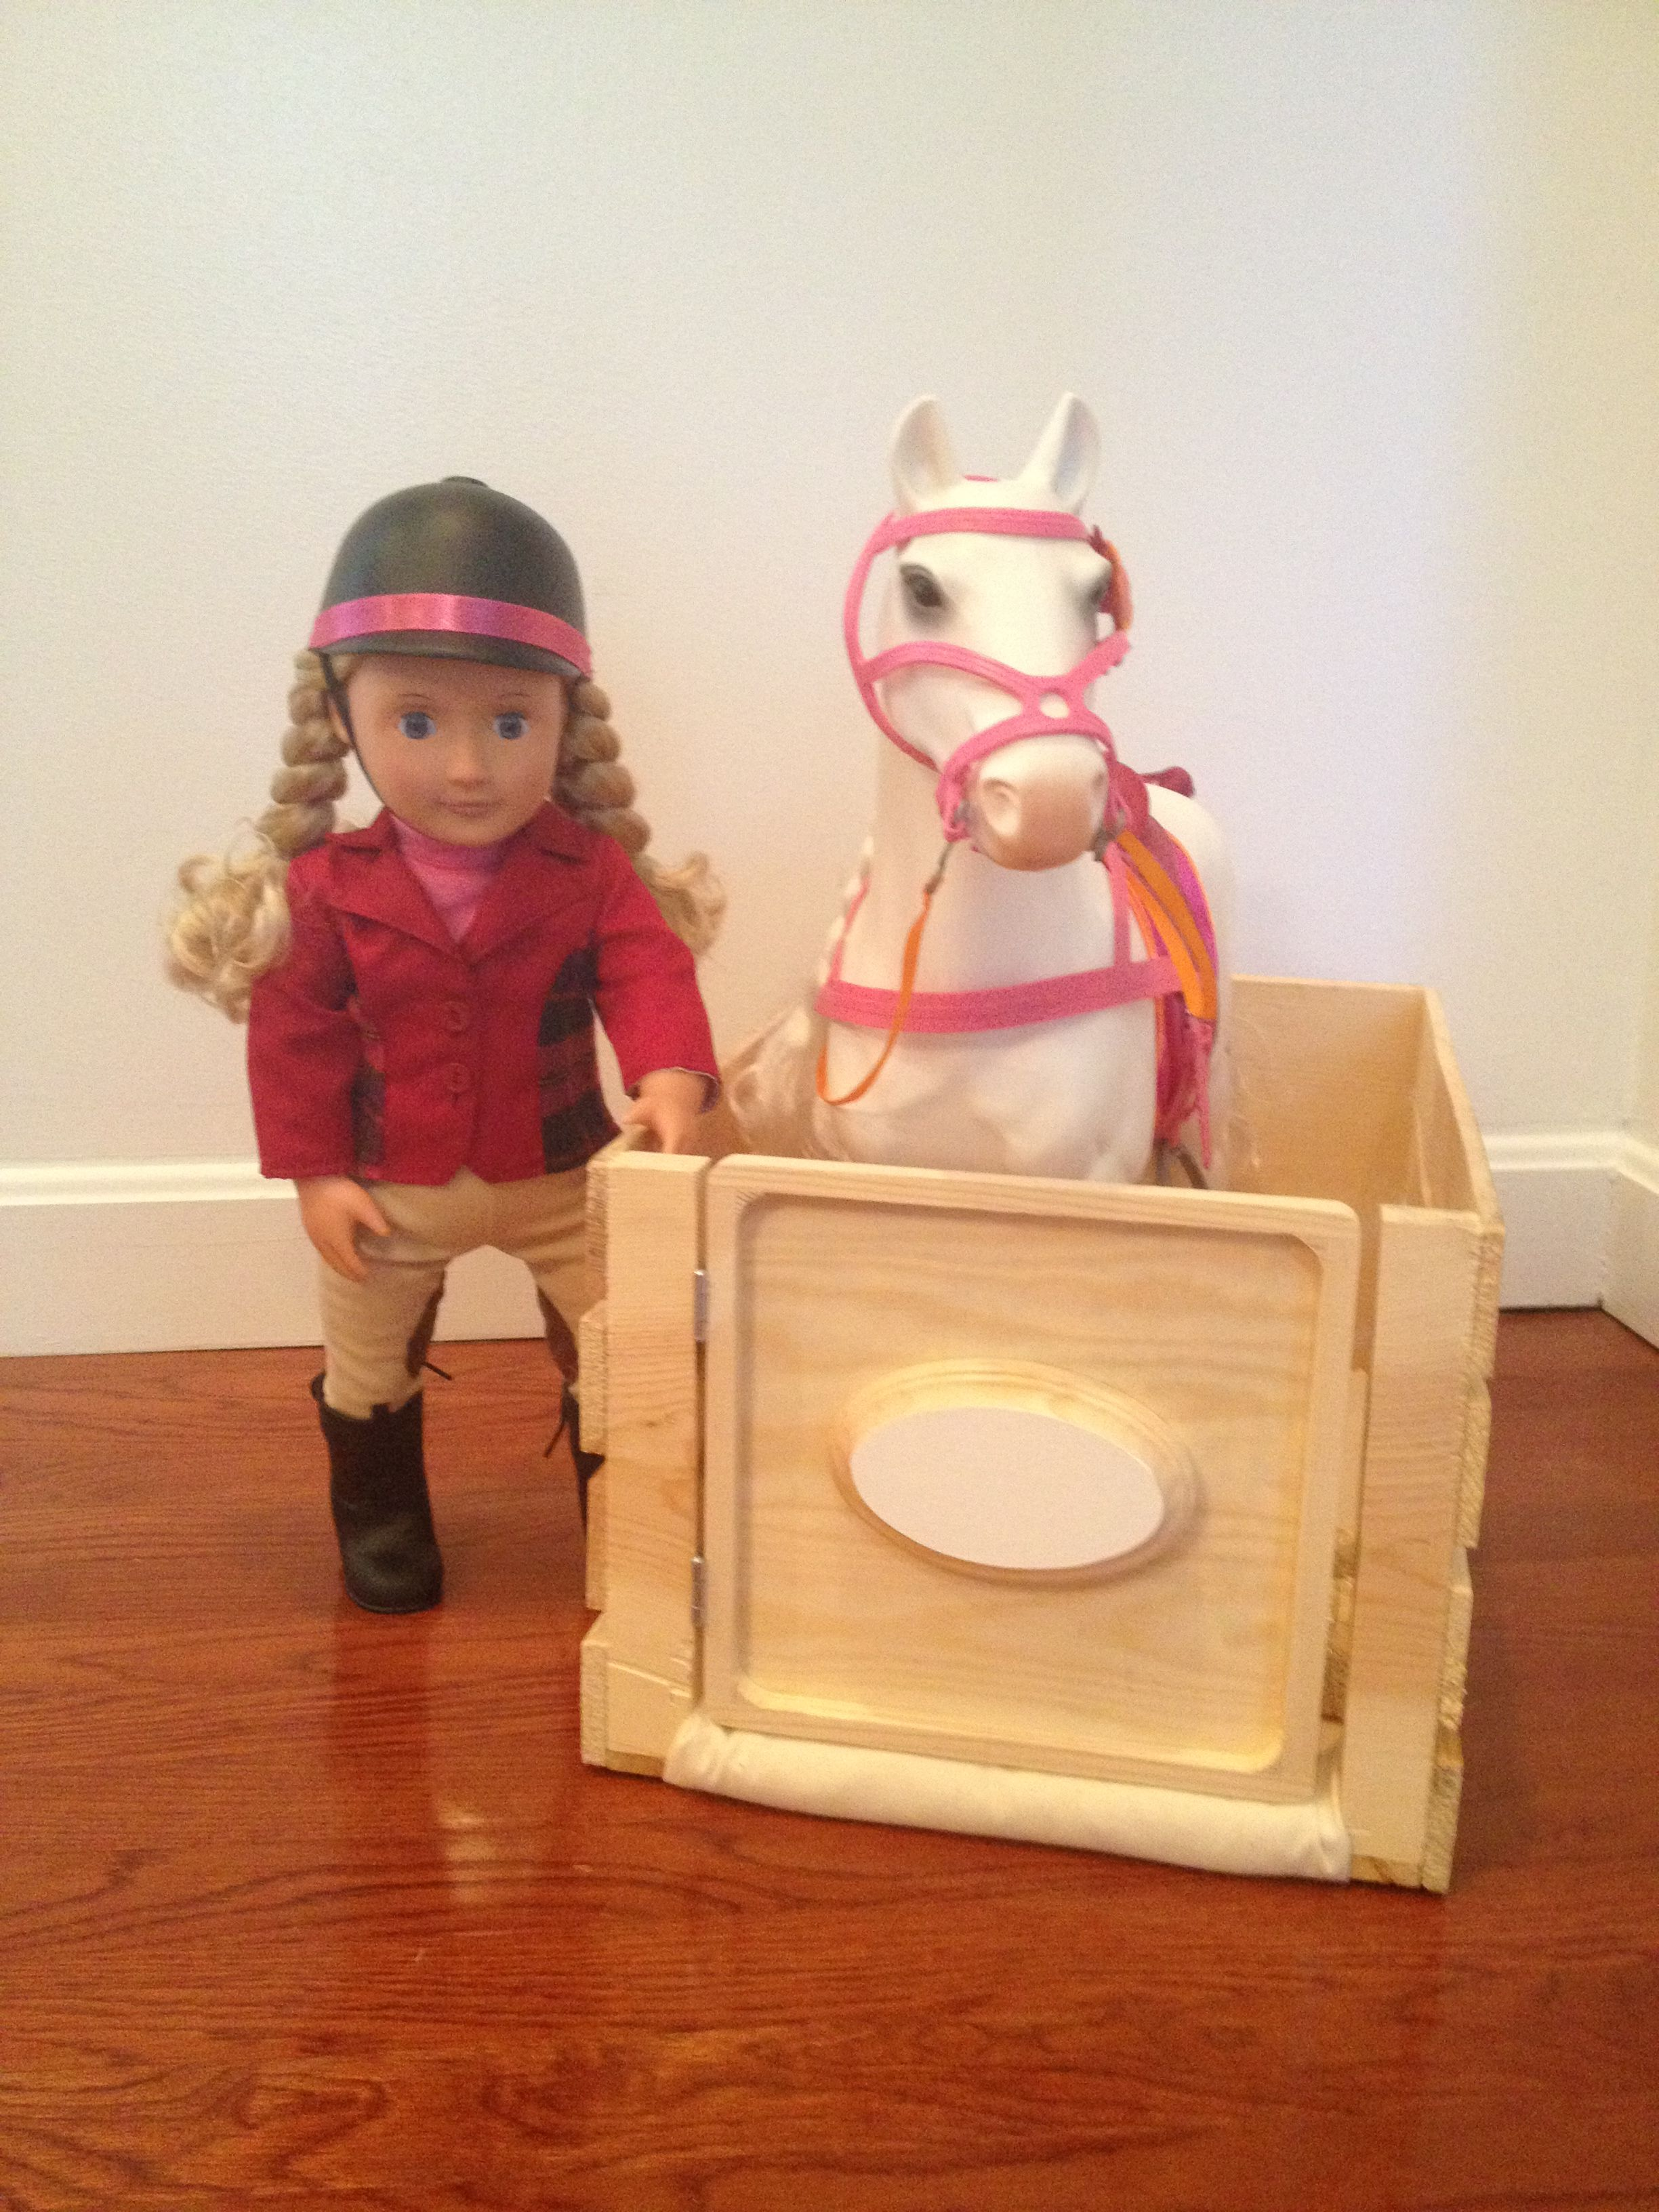 Diy Toy Horse Stable Made From A Wooden Crate From Michael S Kat